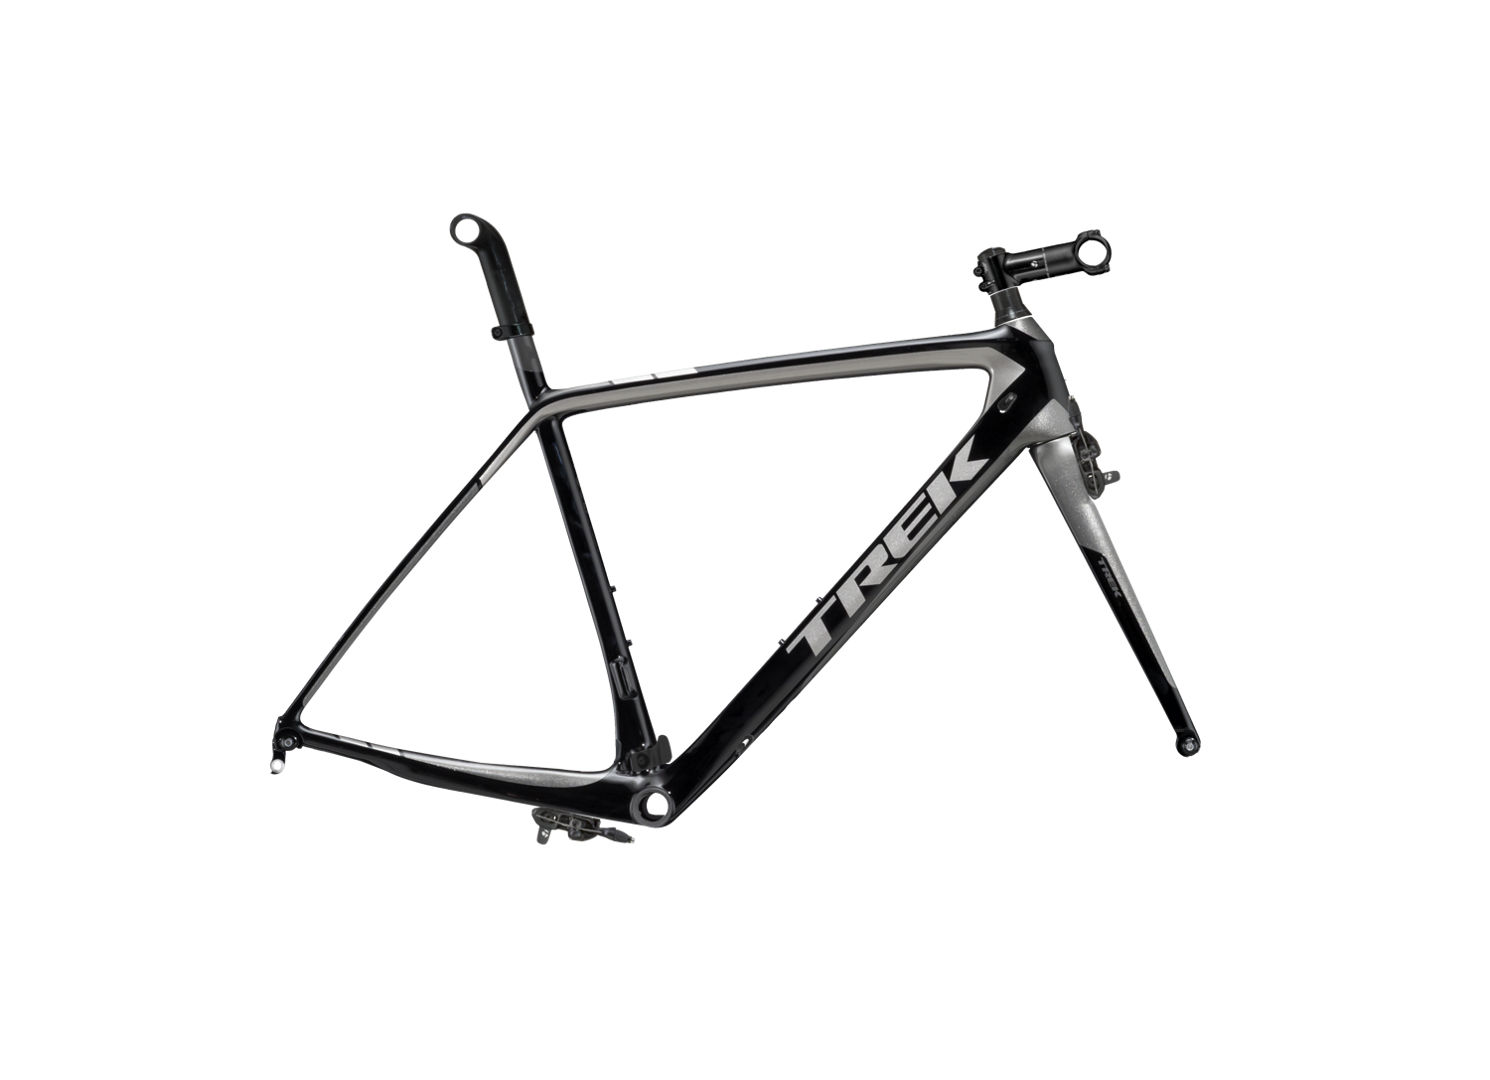 Trek Madone 6 Series Frameset H1 Geometry 2015 Review